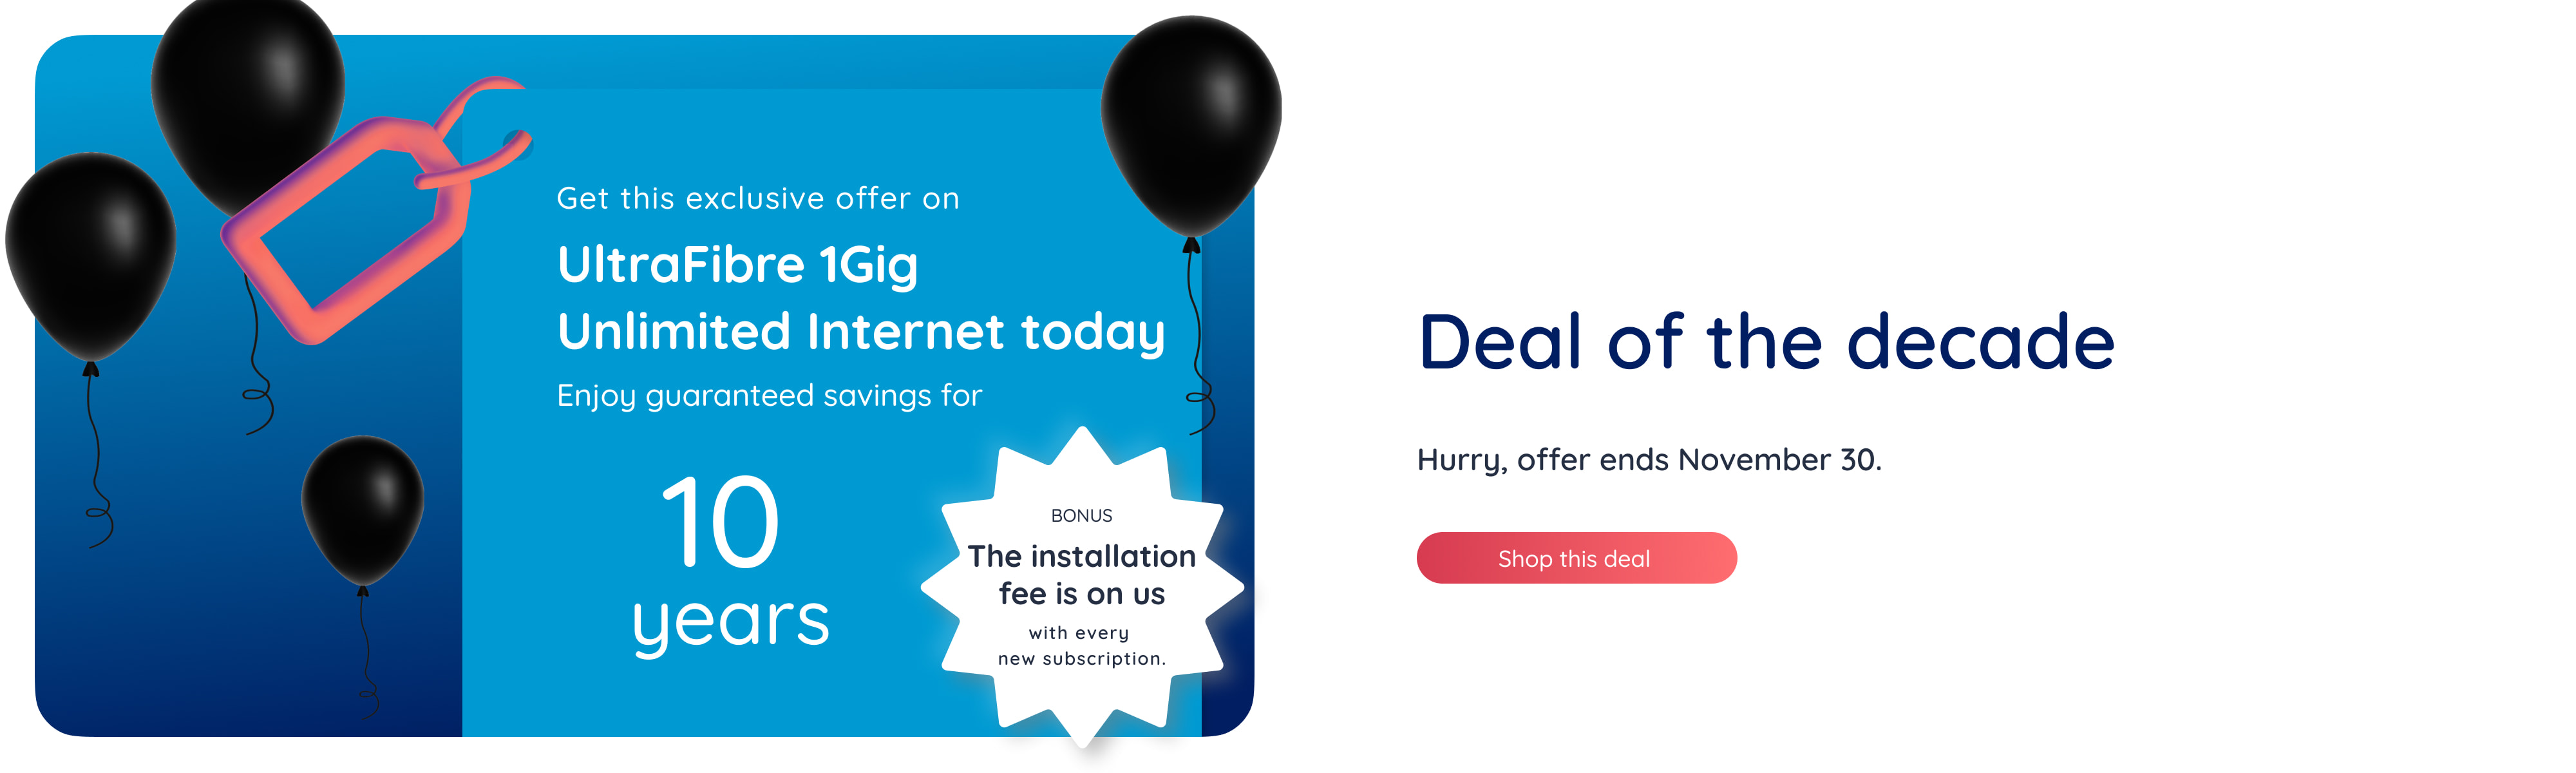 Get this exclusive offer on UltraFibre 1Gig Unlimited Internet today. Enjoy guaranteed savings for 10 years.   Bonus: The installation fee is on us with every new subscription. Deal of the decade Hurry, offer ends November 30. Shop this deal